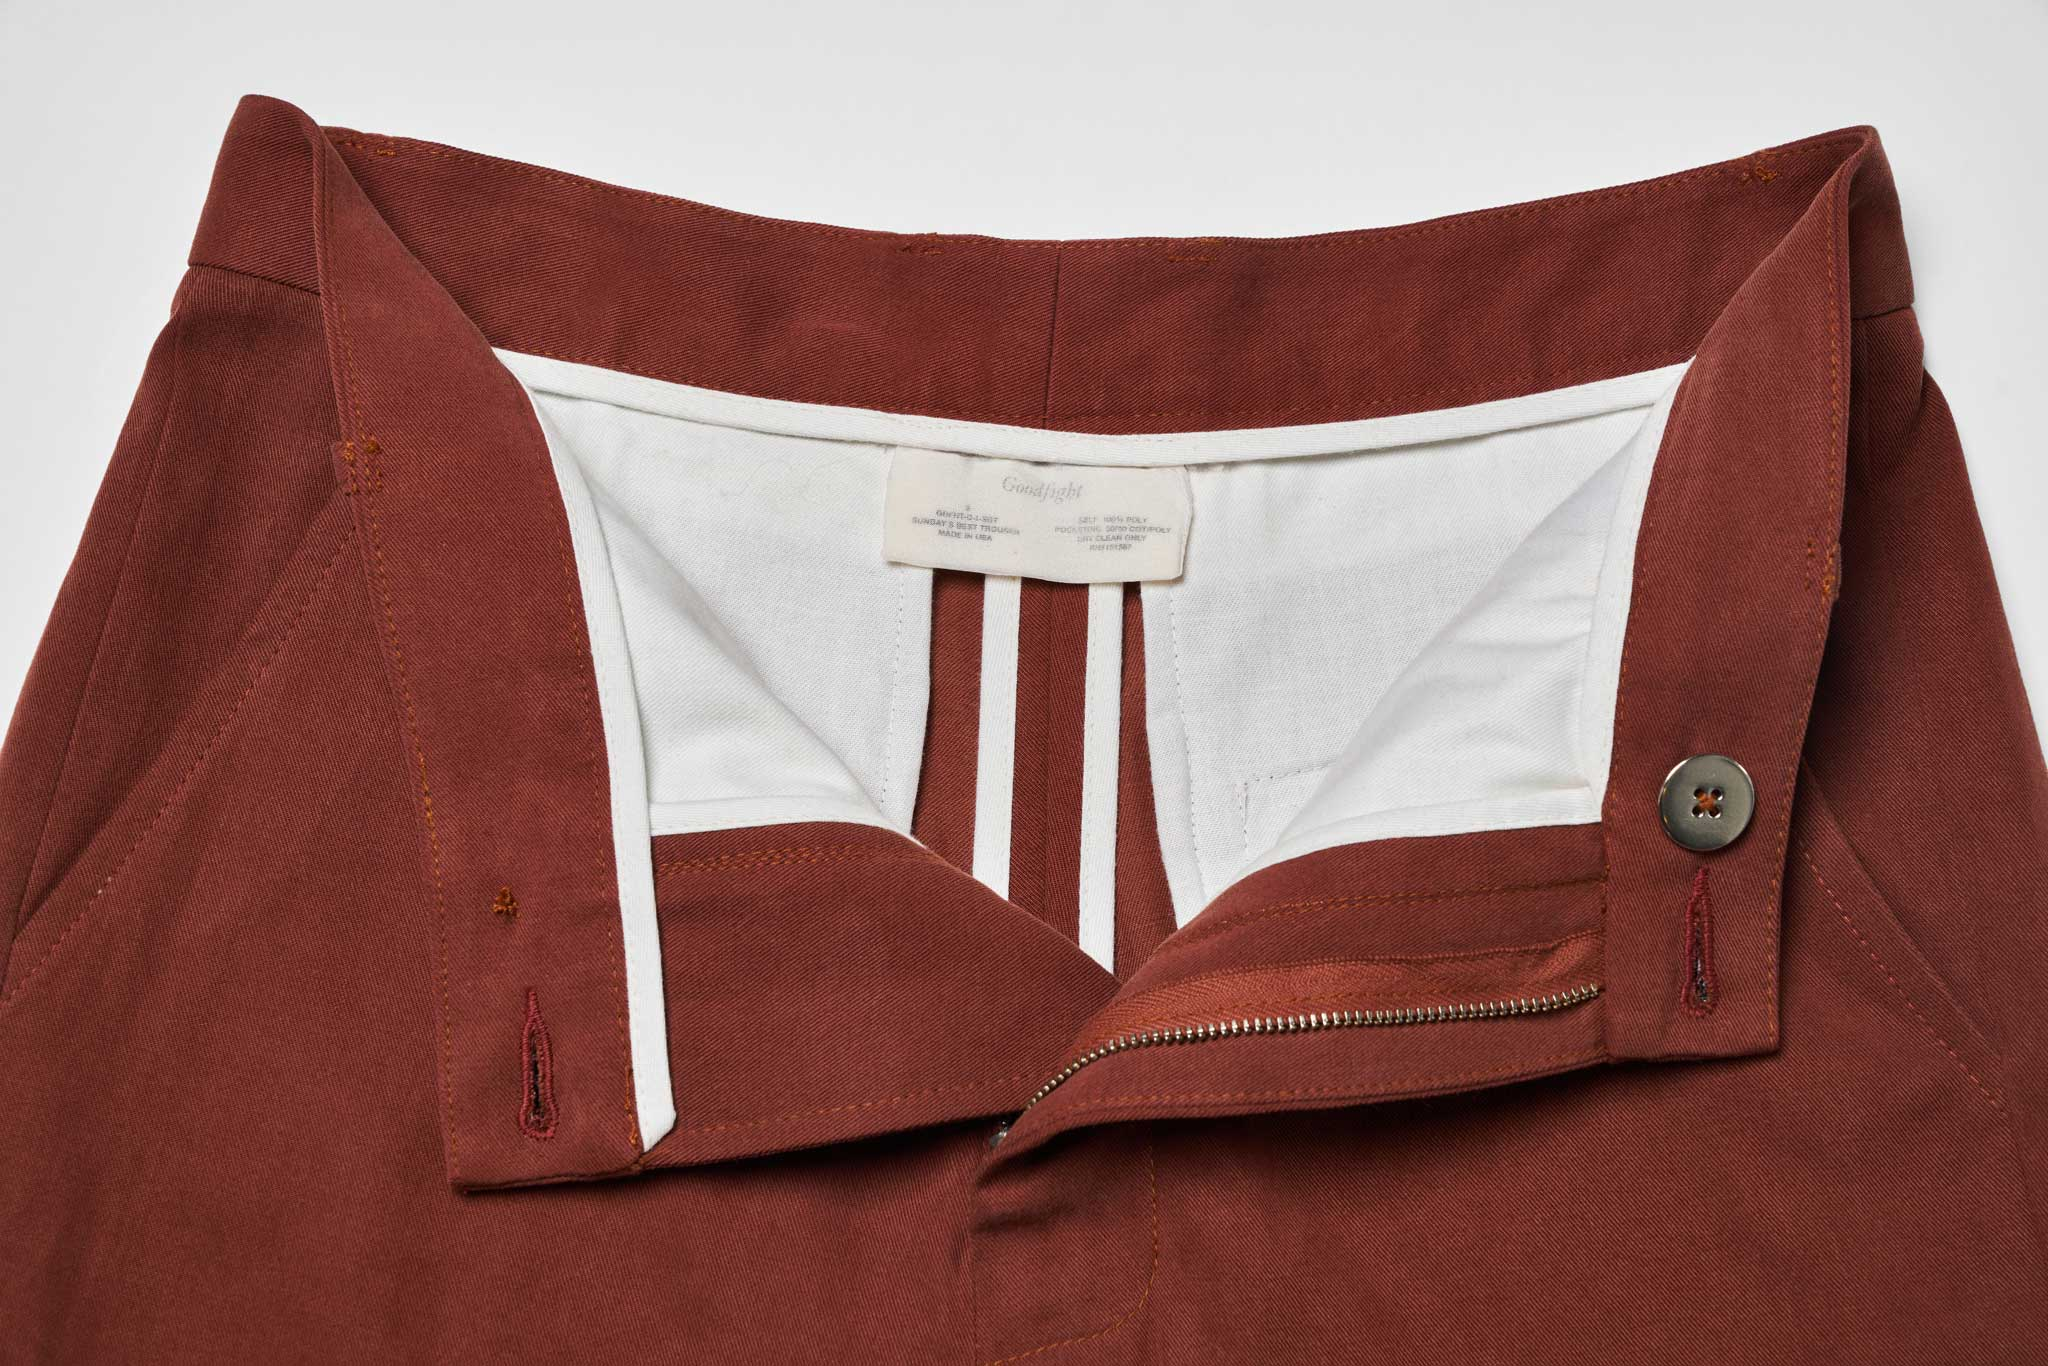 Goodfight Hobbes Trouser Brown